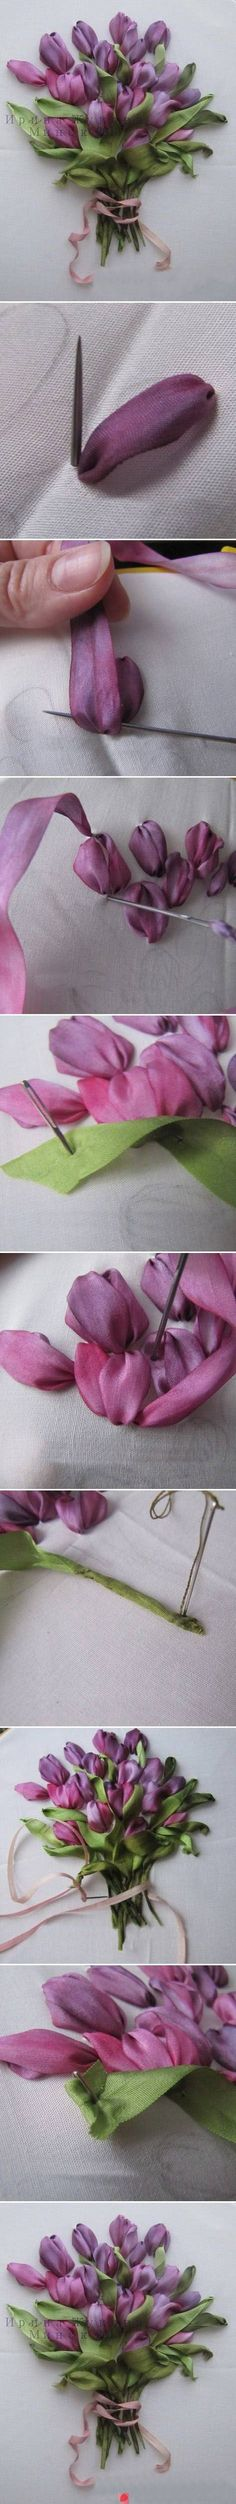 #sewing #crafting #craft #art #design #stitch #sew #flora #flower #bouquet #DIYflower #DIY #DIYbouquet #artwork